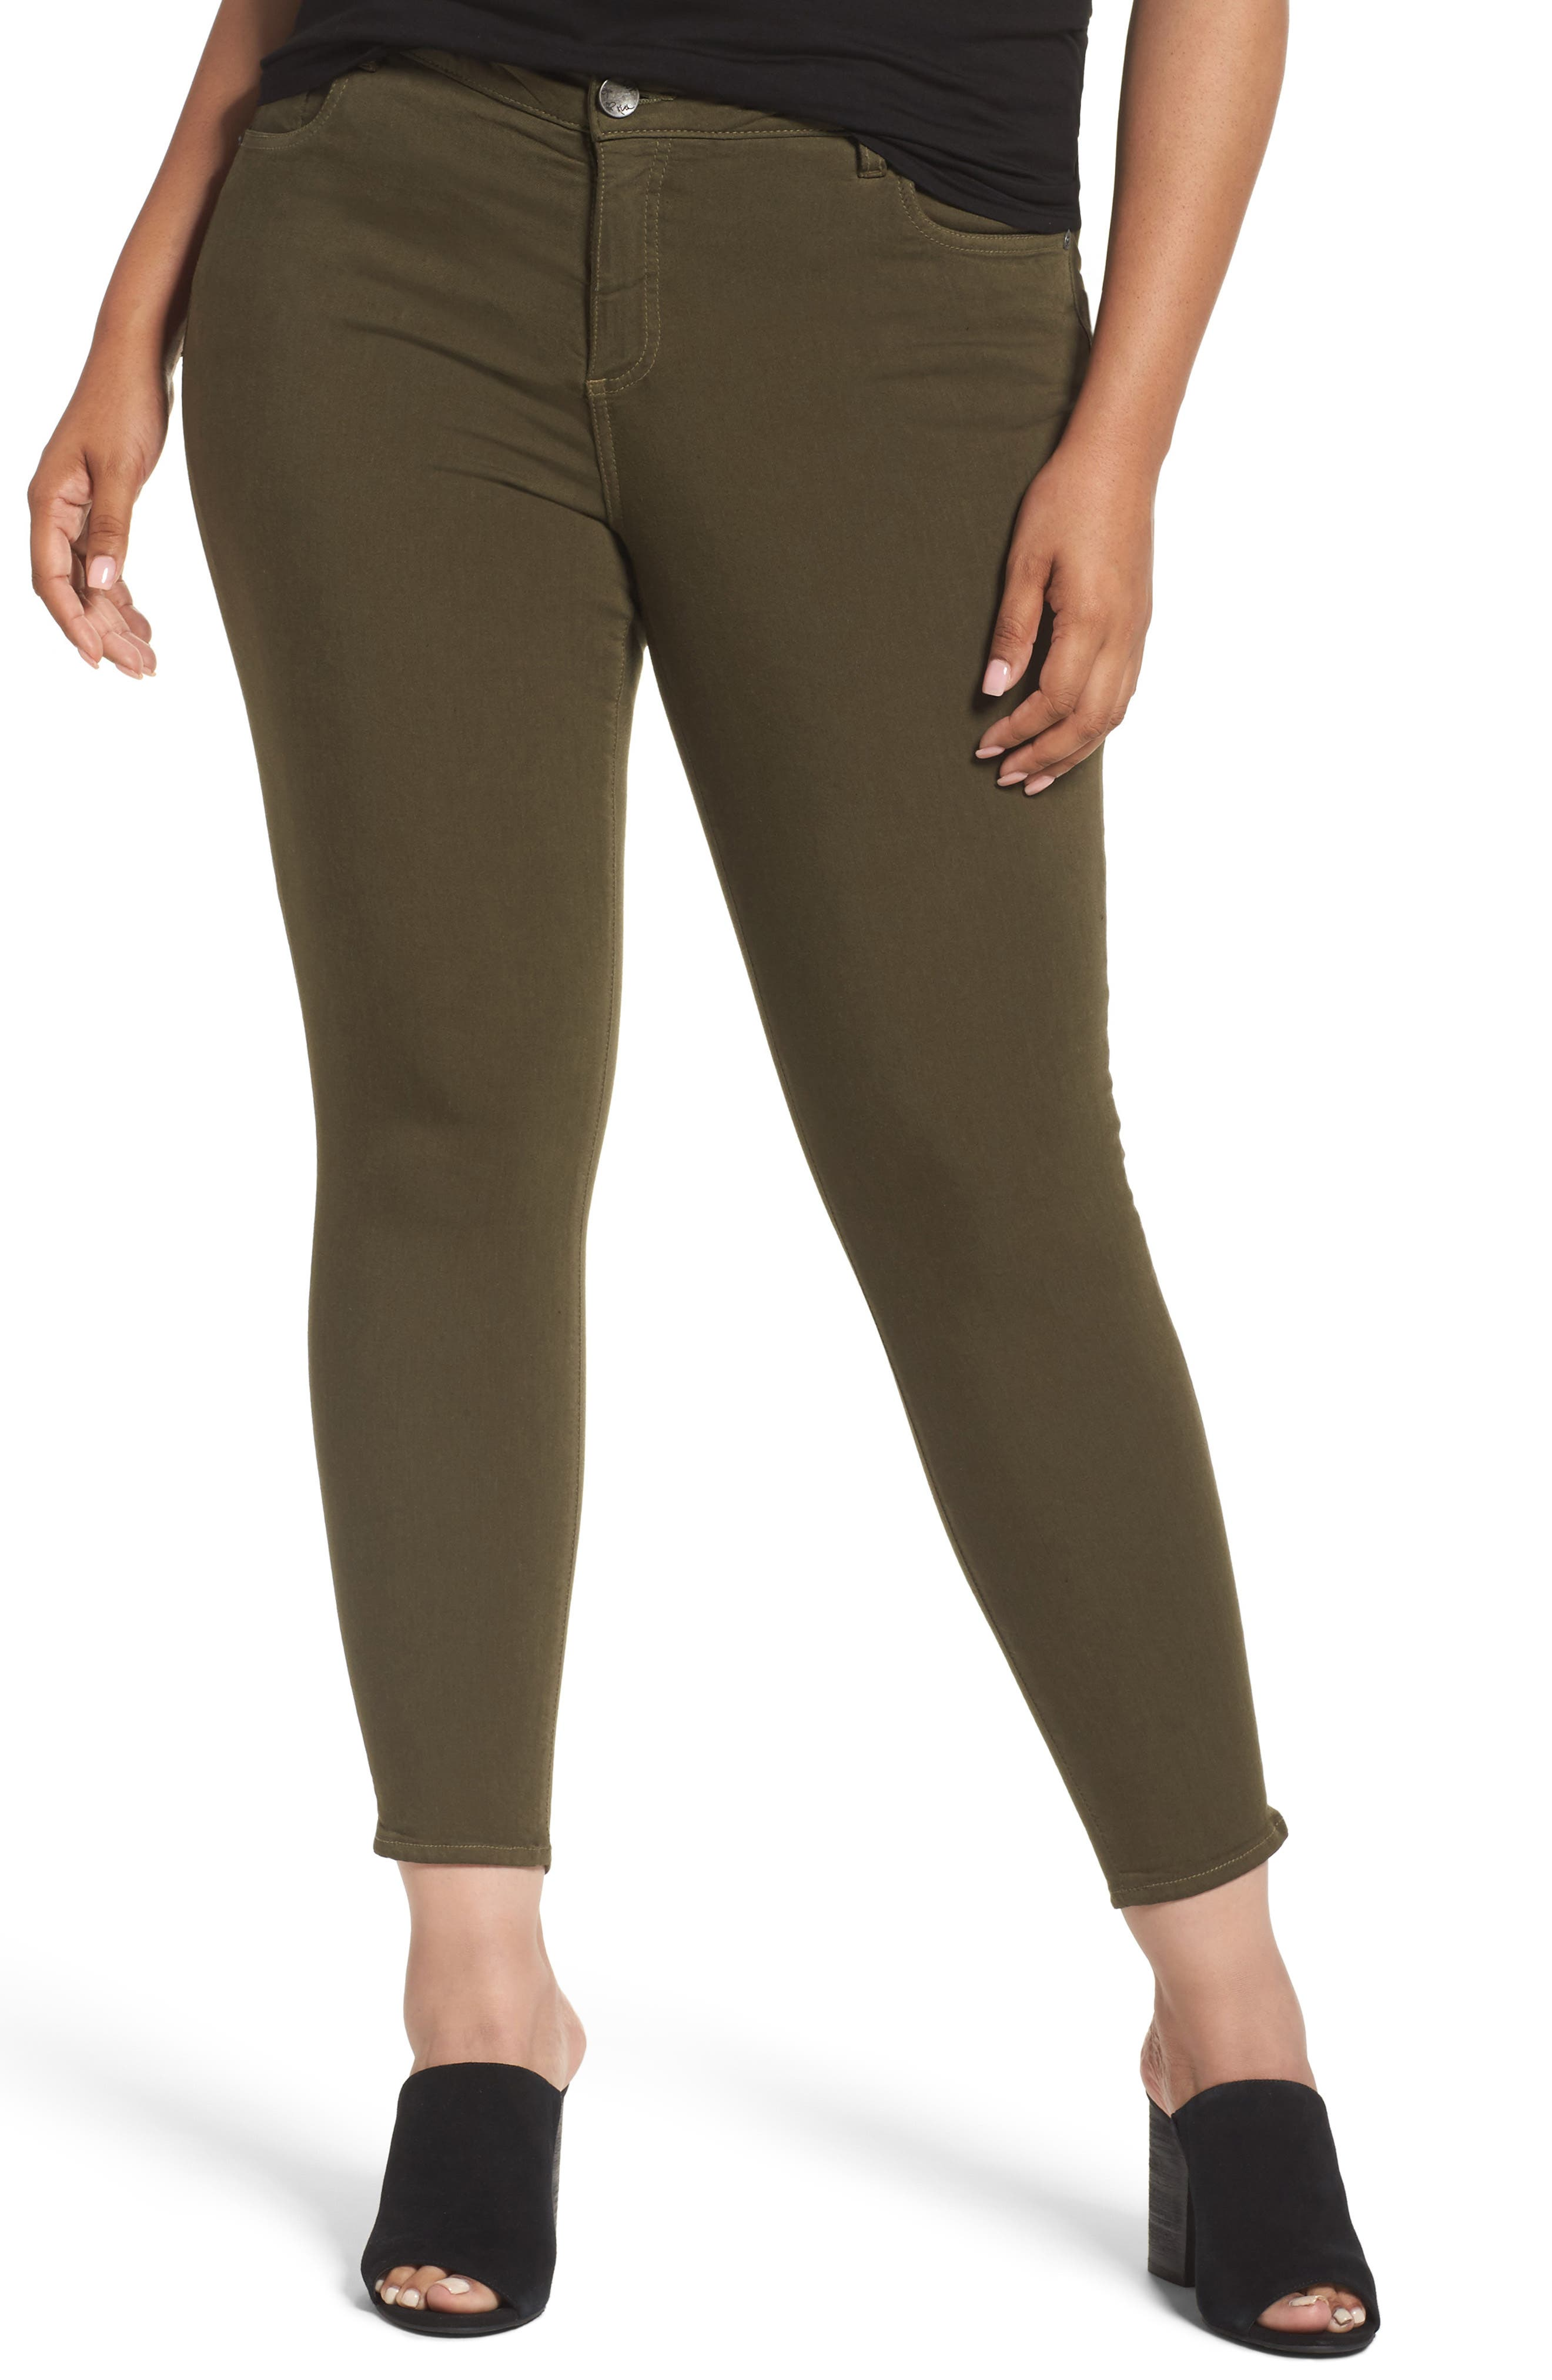 Main Image - KUT from the Kloth Donna Colored Stretch Skinny Jeans (Plus Size)